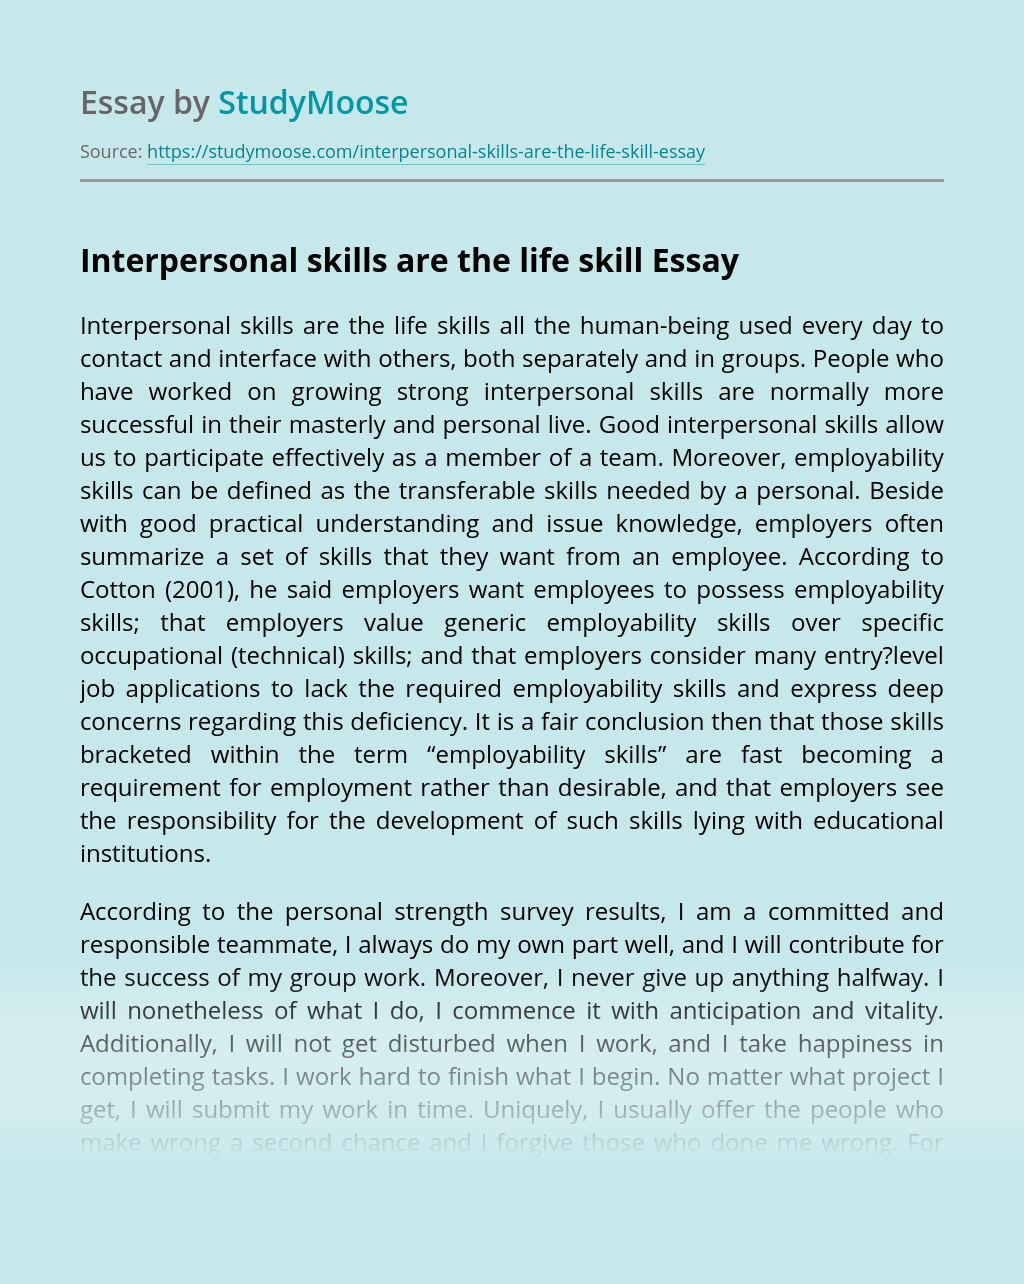 Interpersonal skills are the life skill